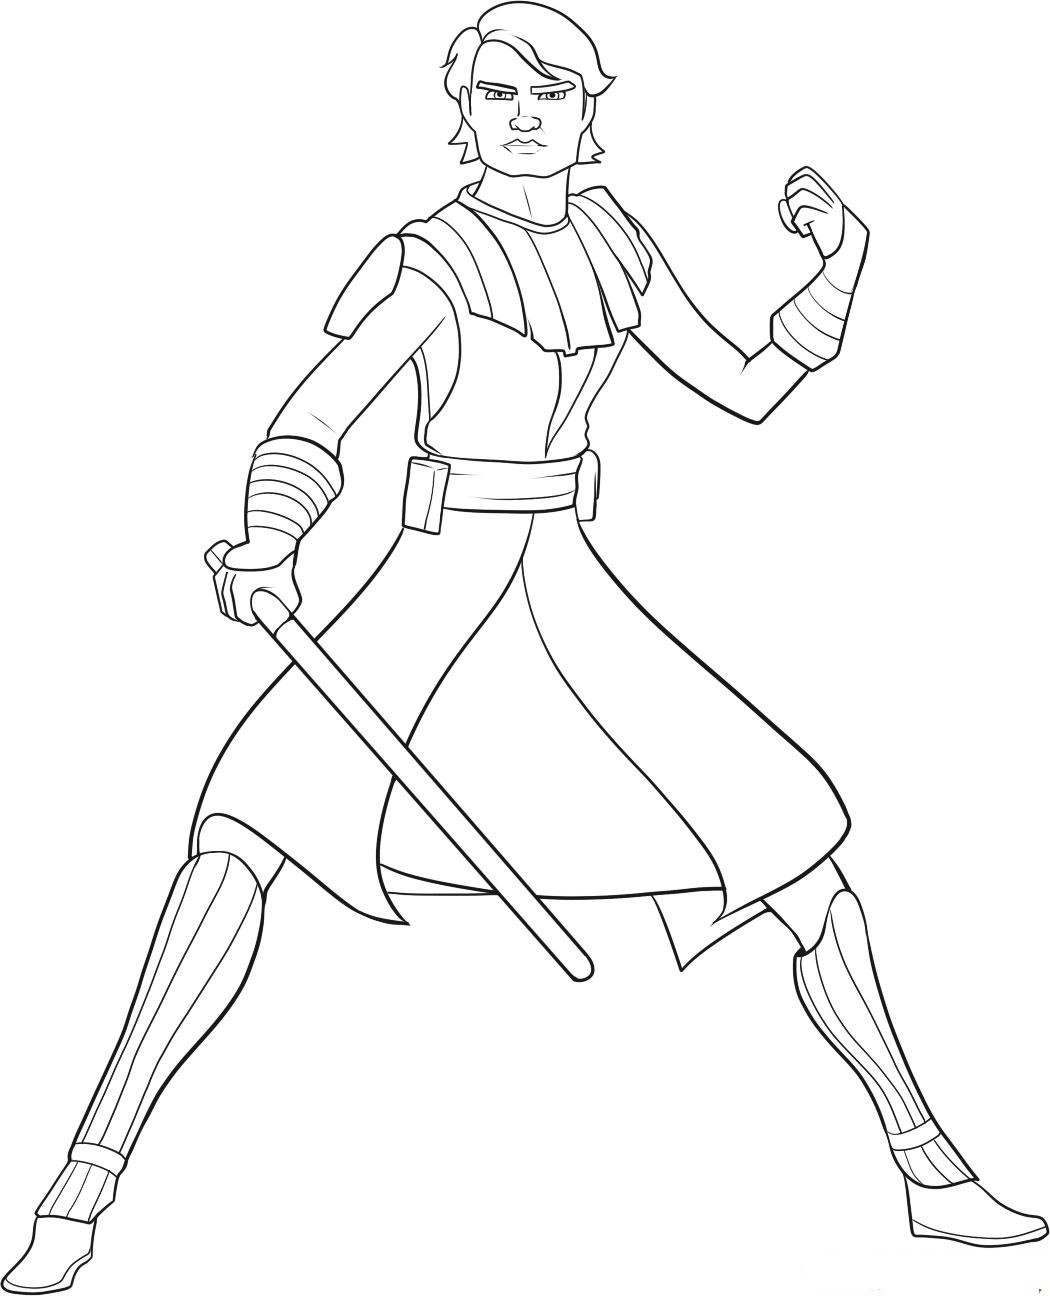 Clone Wars Coloring Pages  star wars darth vader yoda coloring pages for kids storm